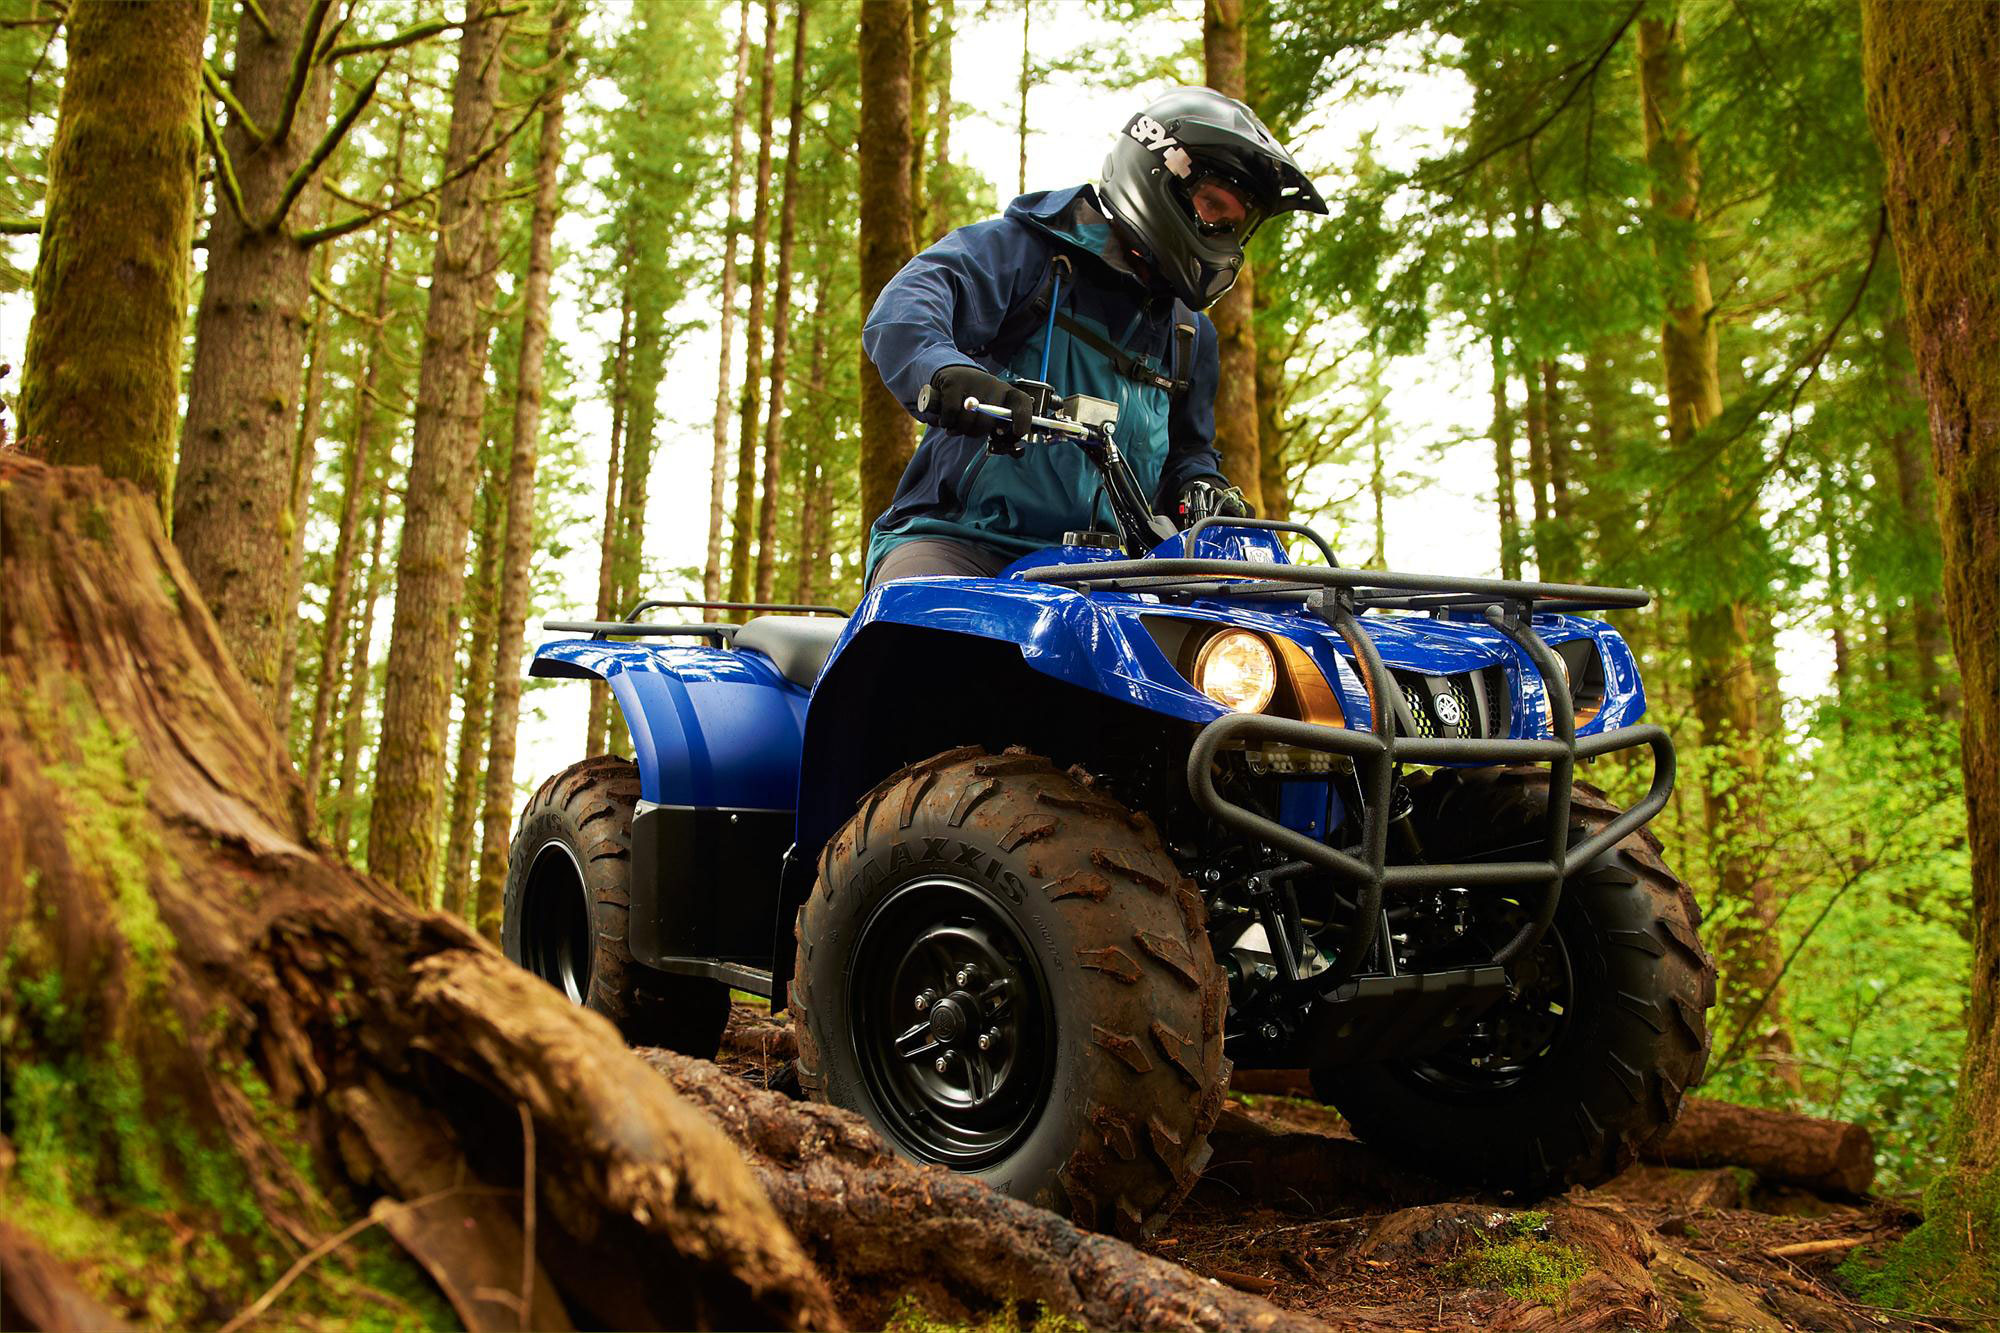 Specs For A 2014 Yamaha 700 Rhino.html   Car Review, Specs, Price and ...